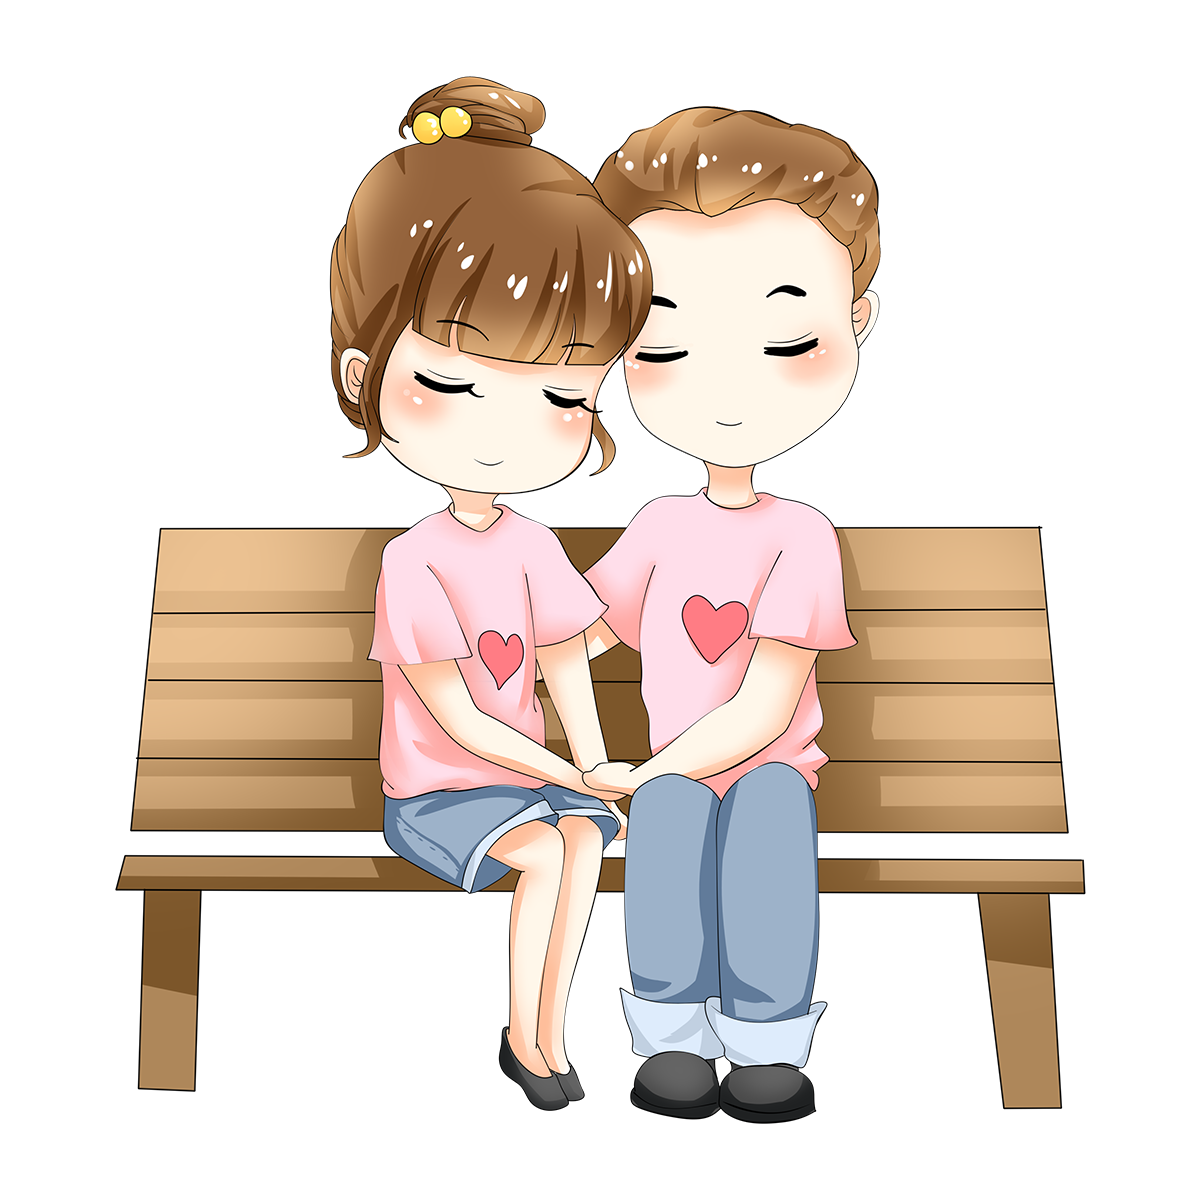 Cute couple png. Valentines day image free